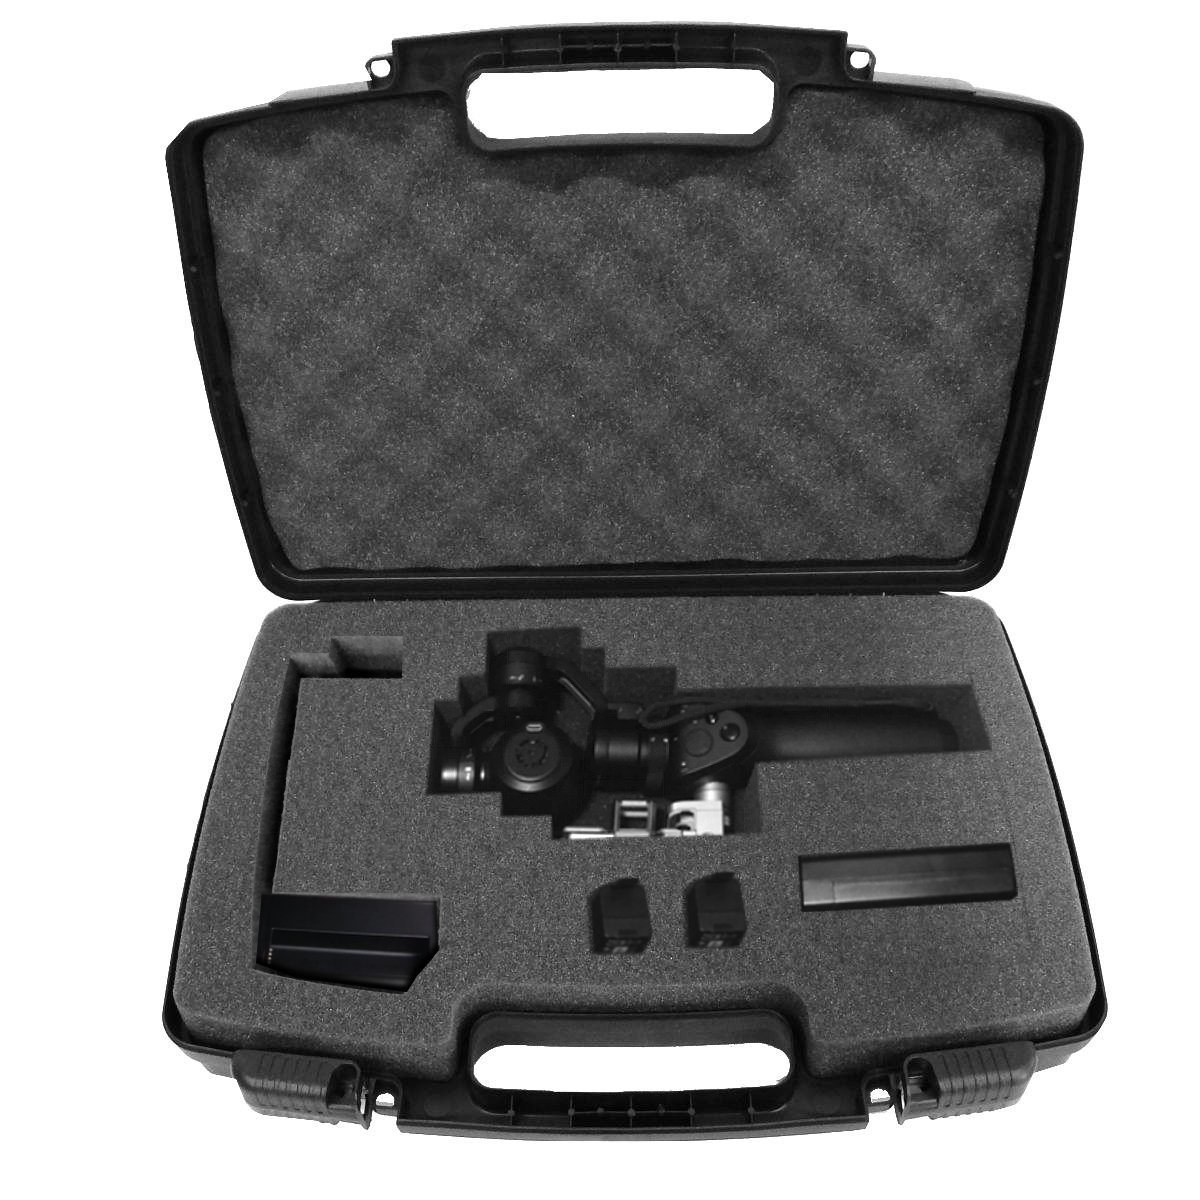 DROPBOX Protective Carrying Case for DJI OSMO Mobile 2 Handheld Smartphone Gimbal and DJI OSMO Mobile – Gimbal Case fits OSMO MOBILE , Microphone , Battery , Remote , Adapter , Charger and Accessories